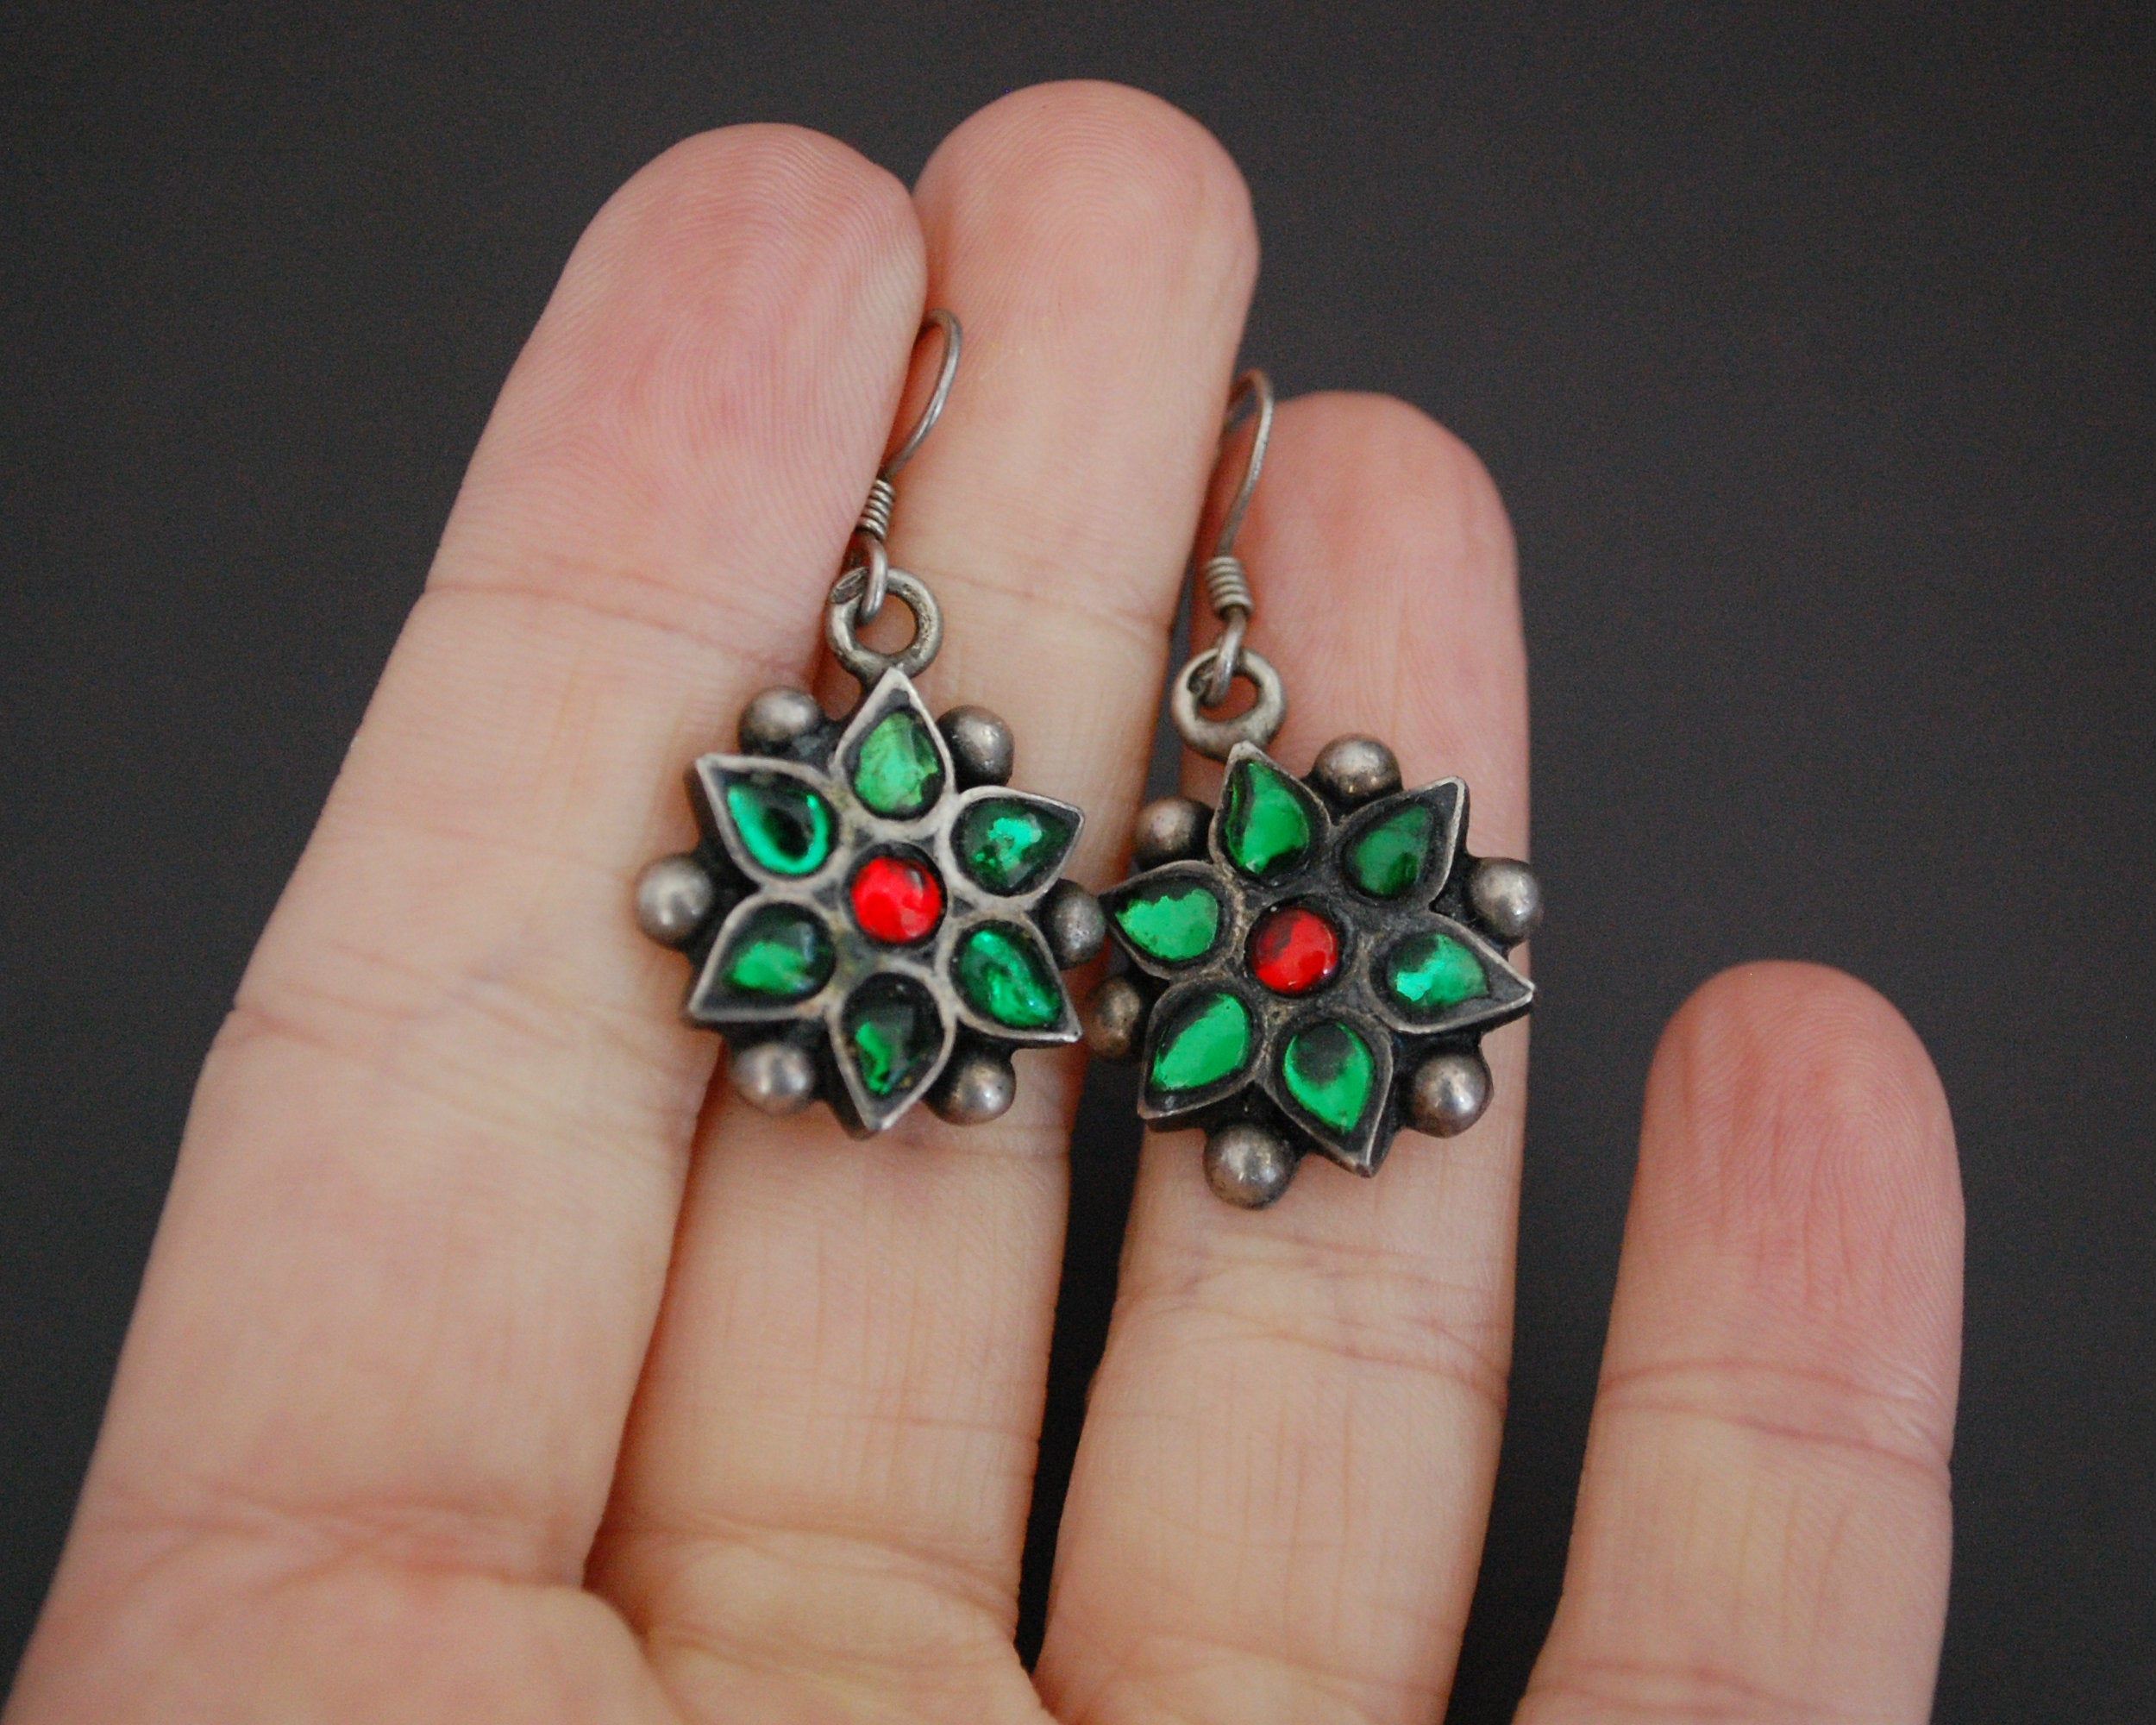 Rajasthani Flower Earrings with Glass